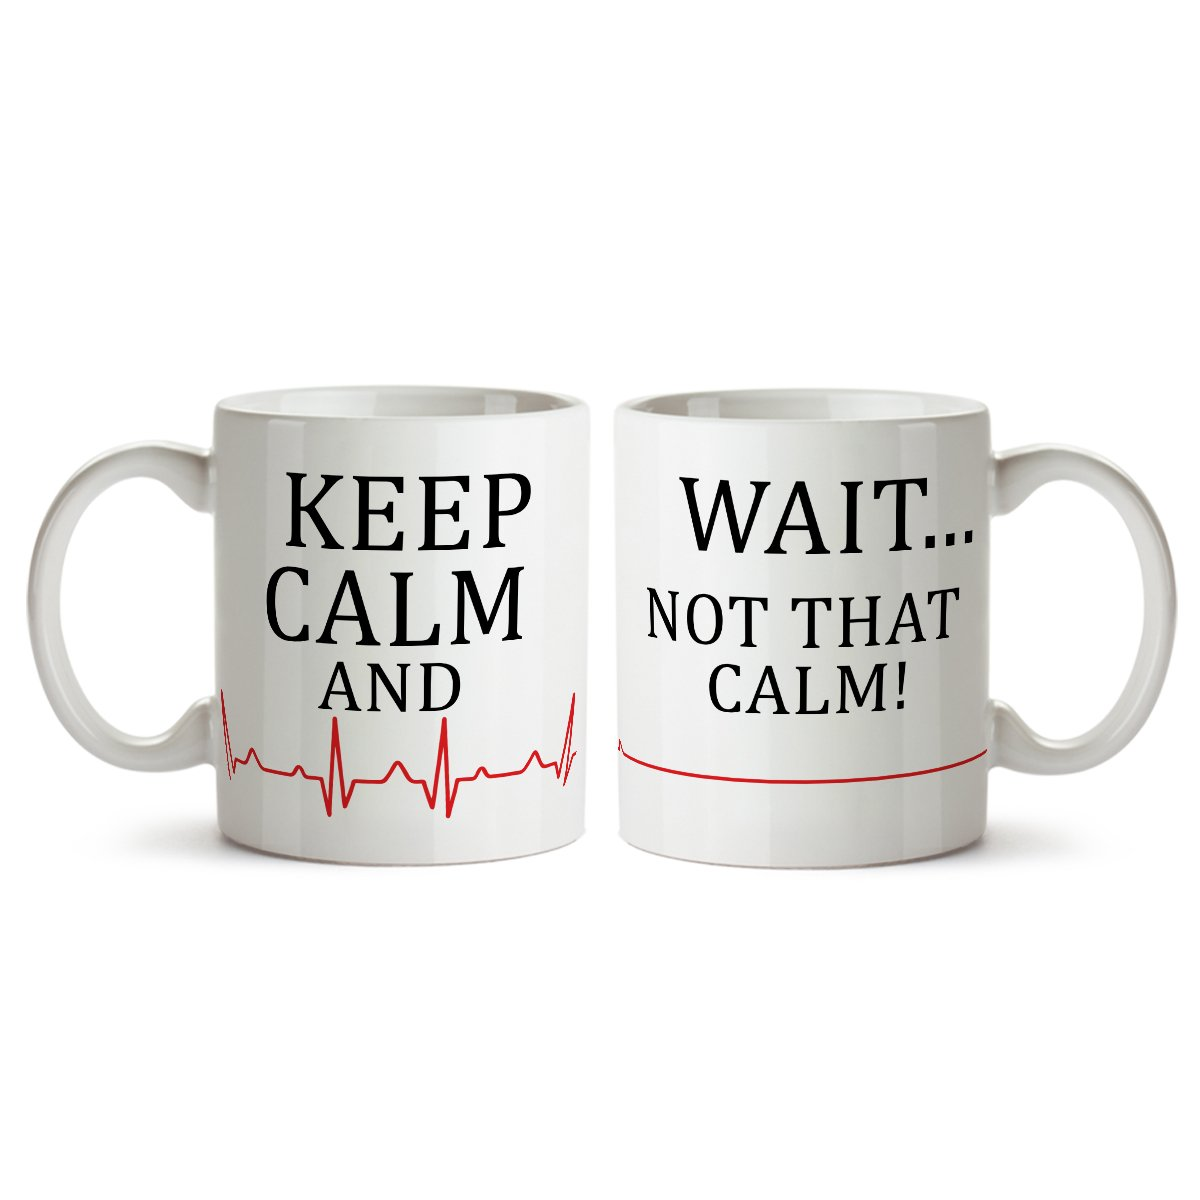 Keep Calm and... Wait Not That Calm! Funny Heartbeat Coffee Mug - Ceramic - 11 oz - Gifts for Doctors